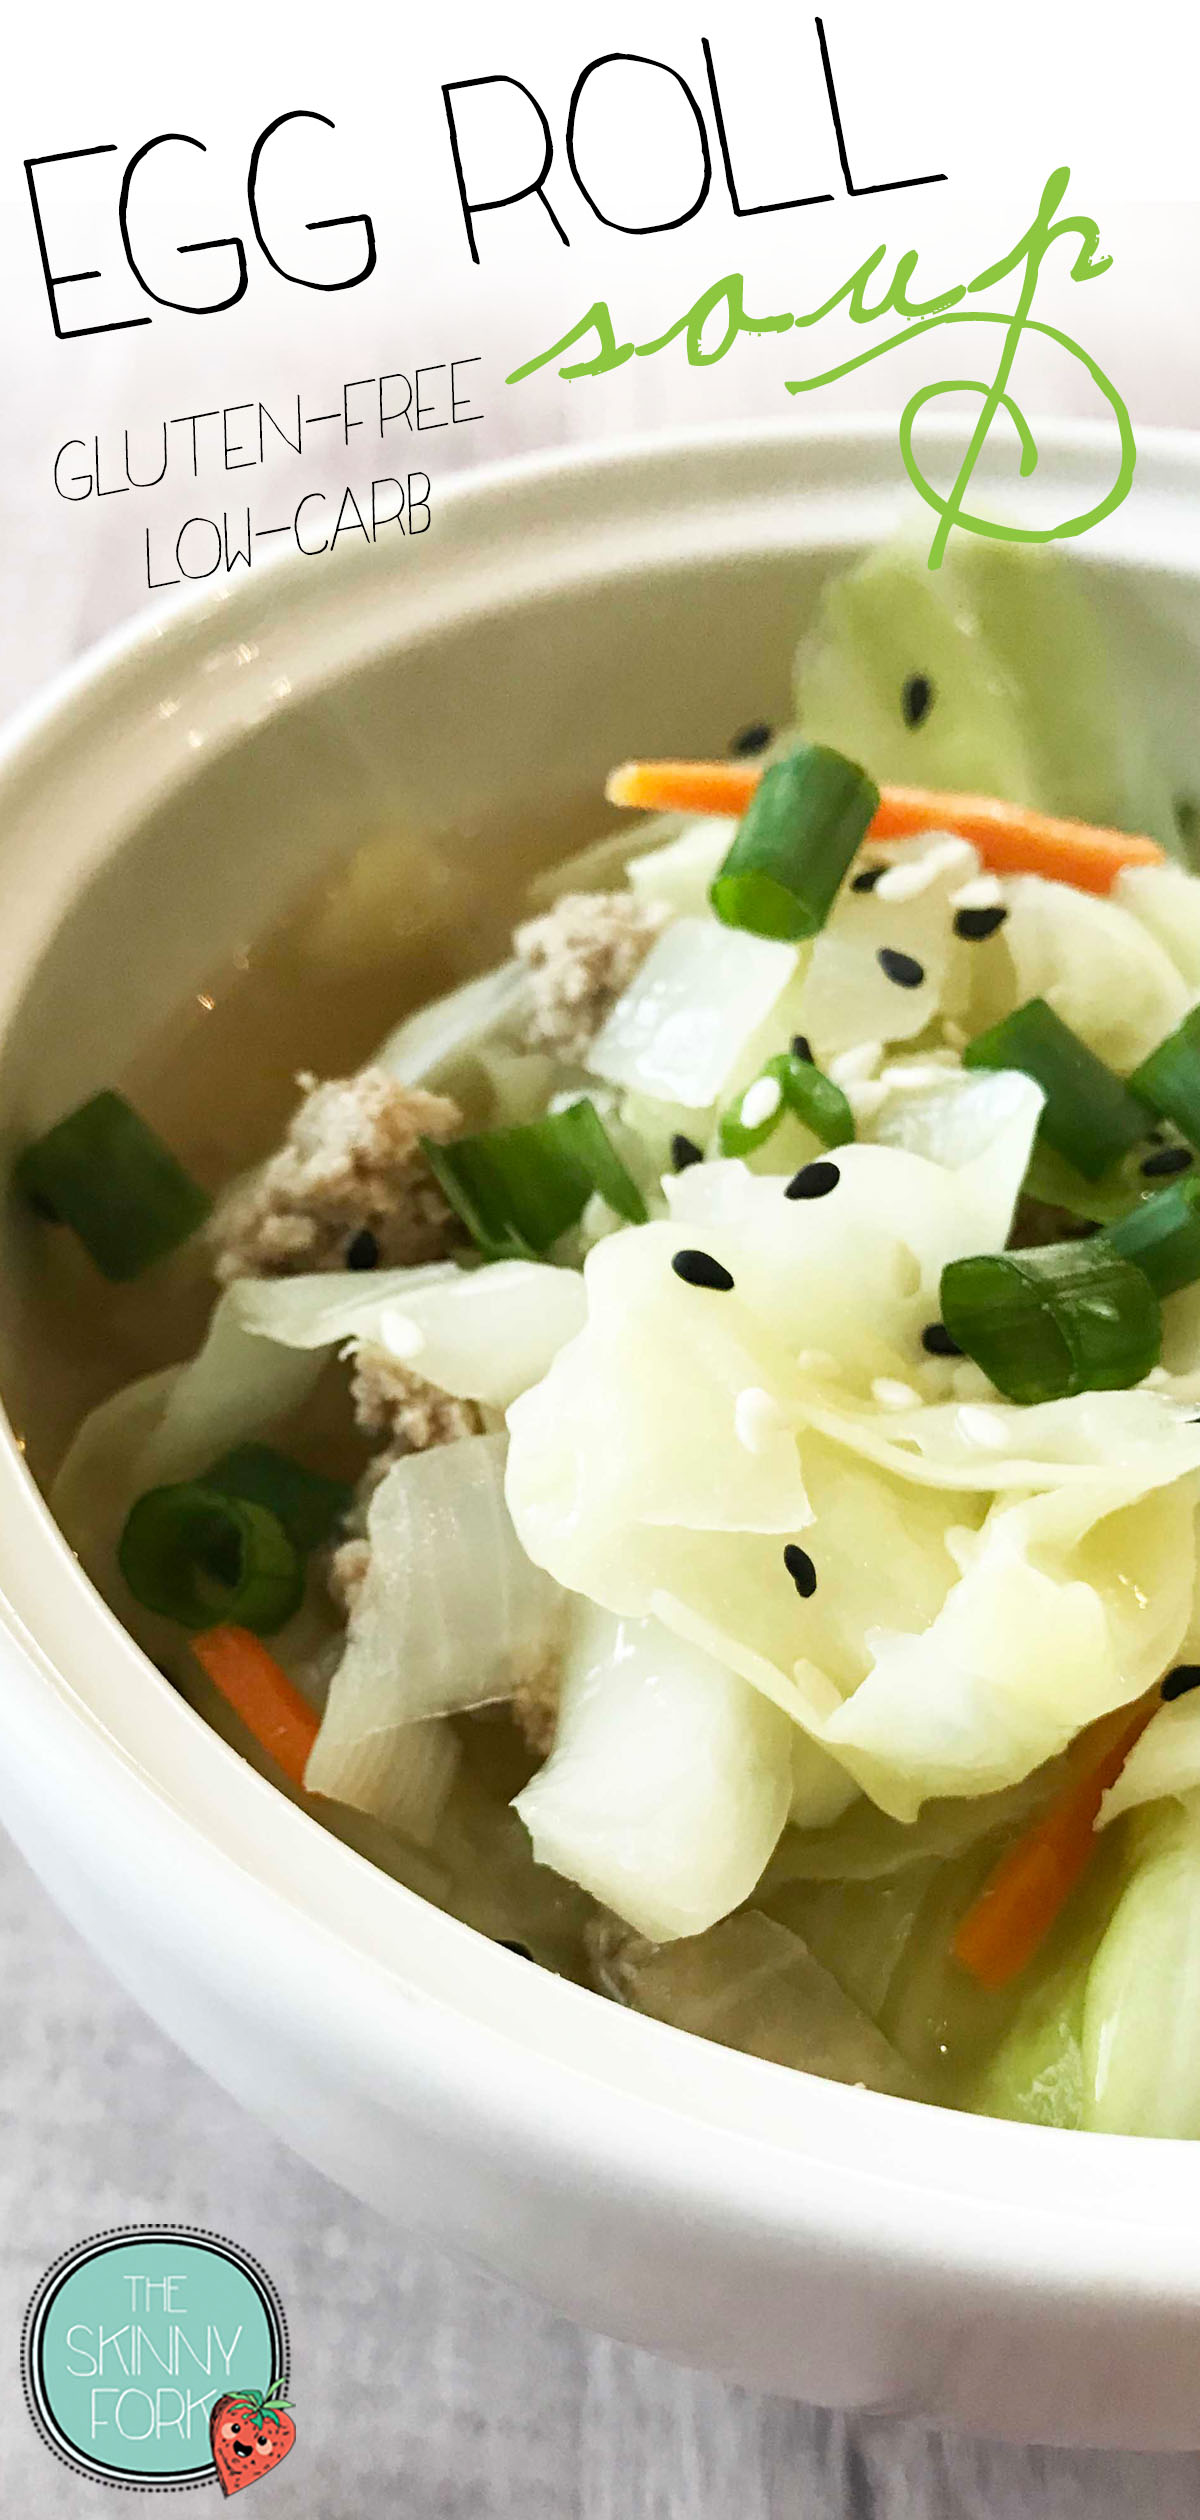 egg-roll-soup-pin.jpg